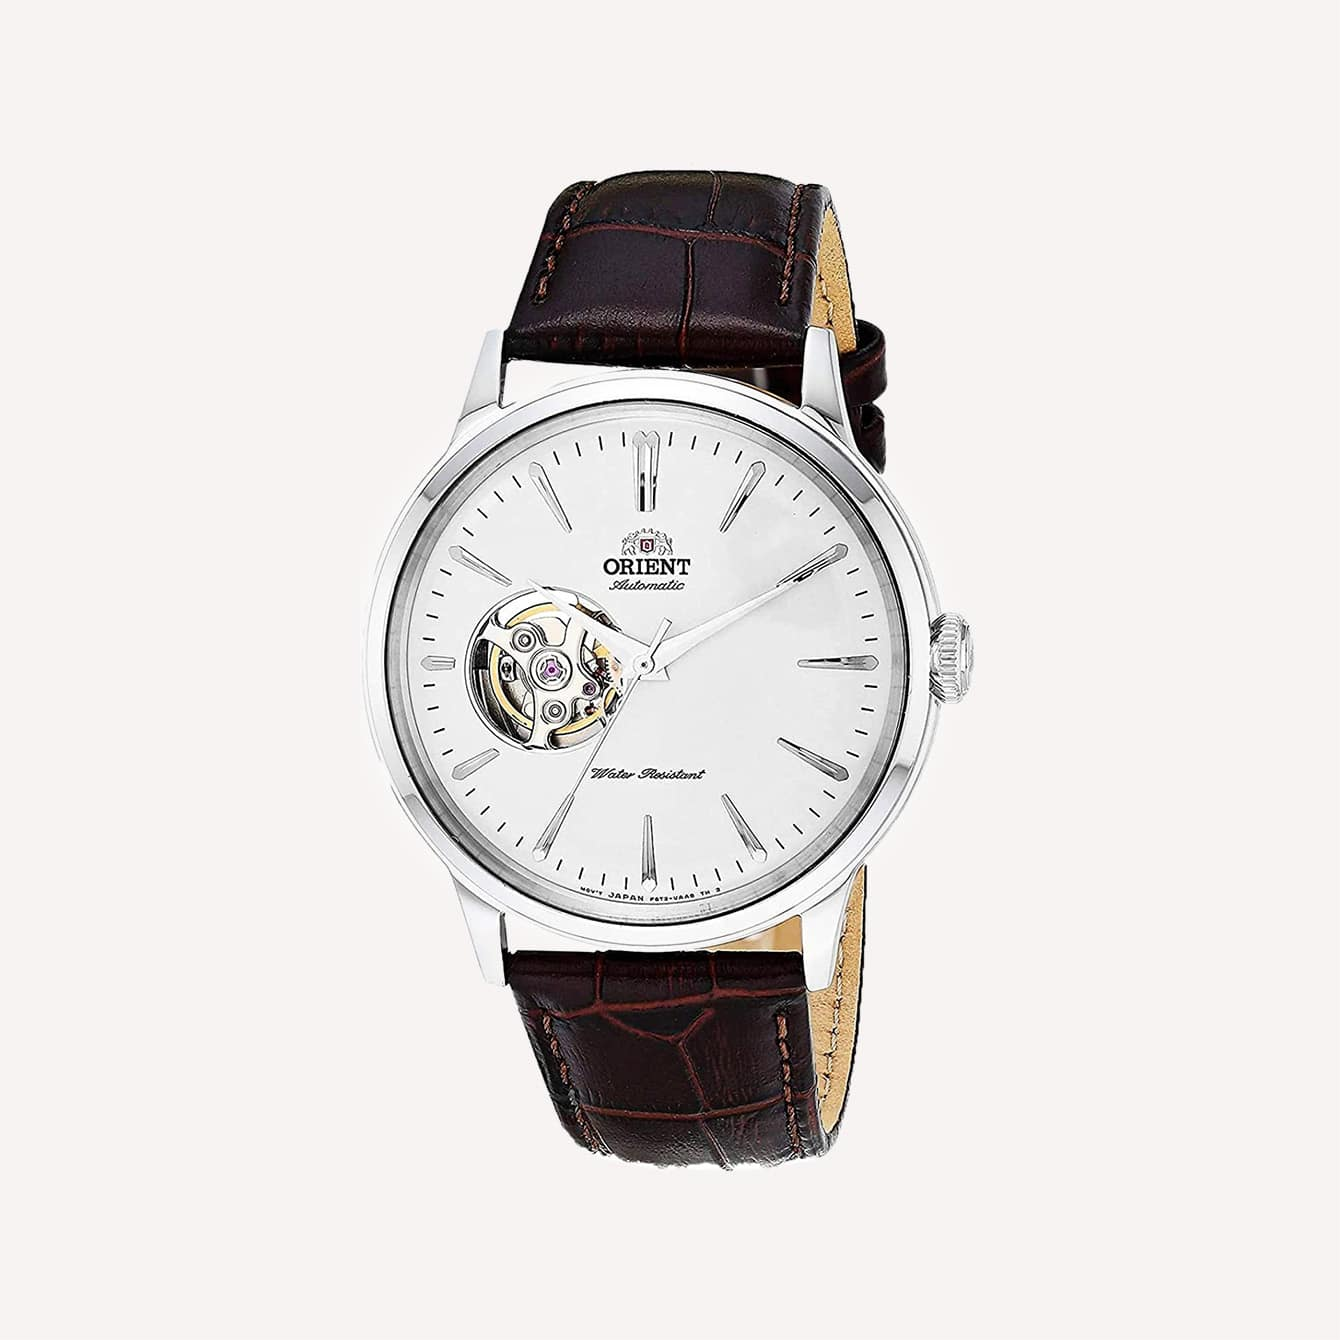 Orient Bambino Open Heart Japanese Automatic Stainless Steel and Leather Dress Watch